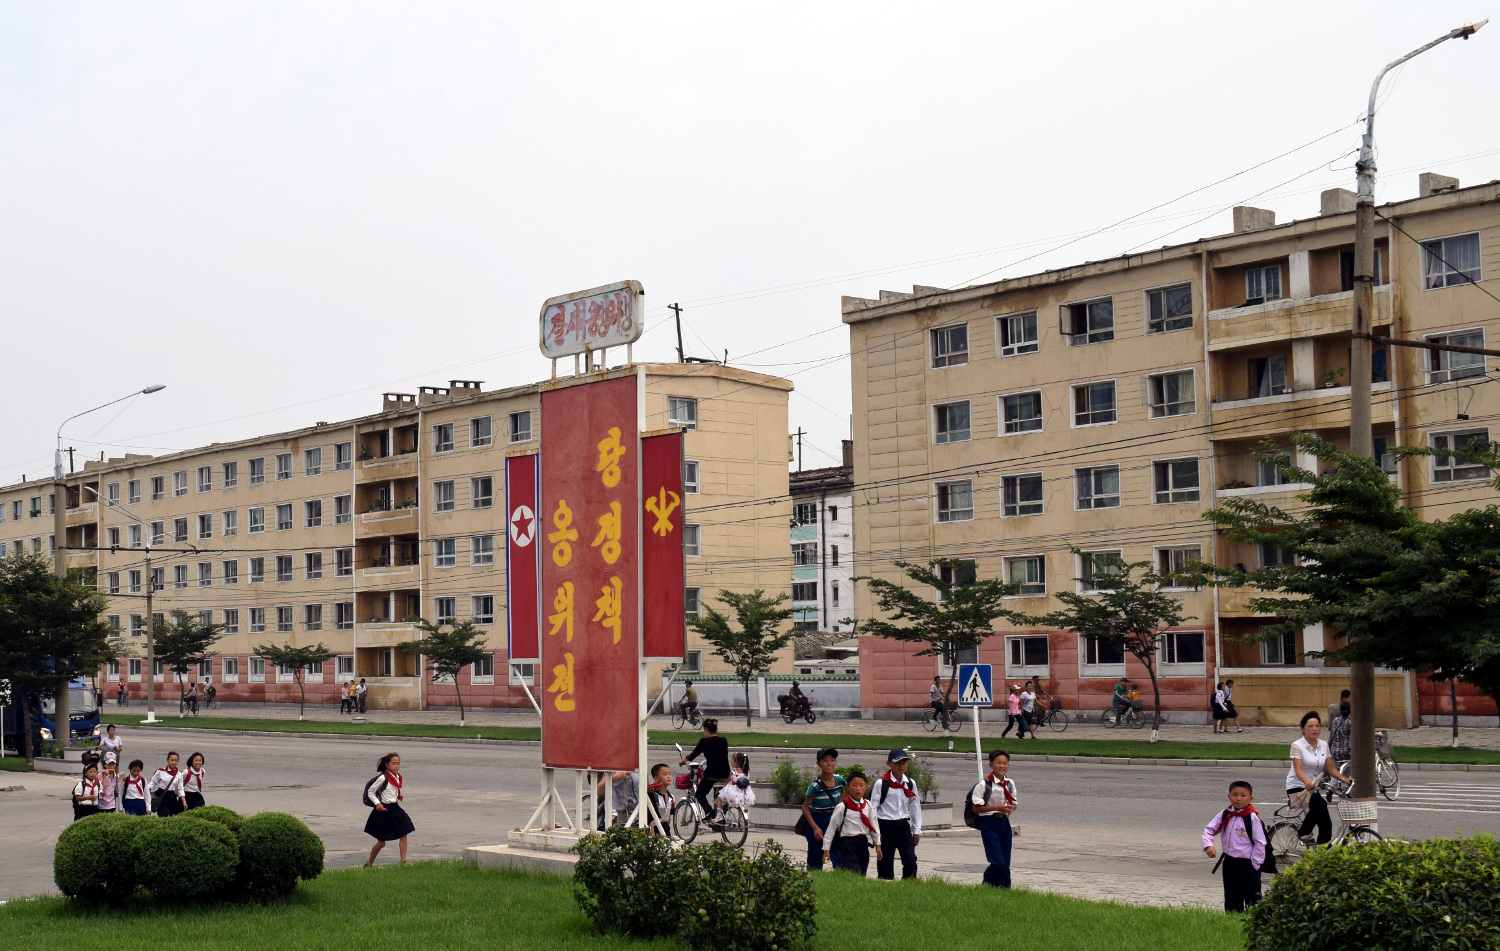 North Korean Young Pioneers in Hamhung city, North Korea (DPRK)